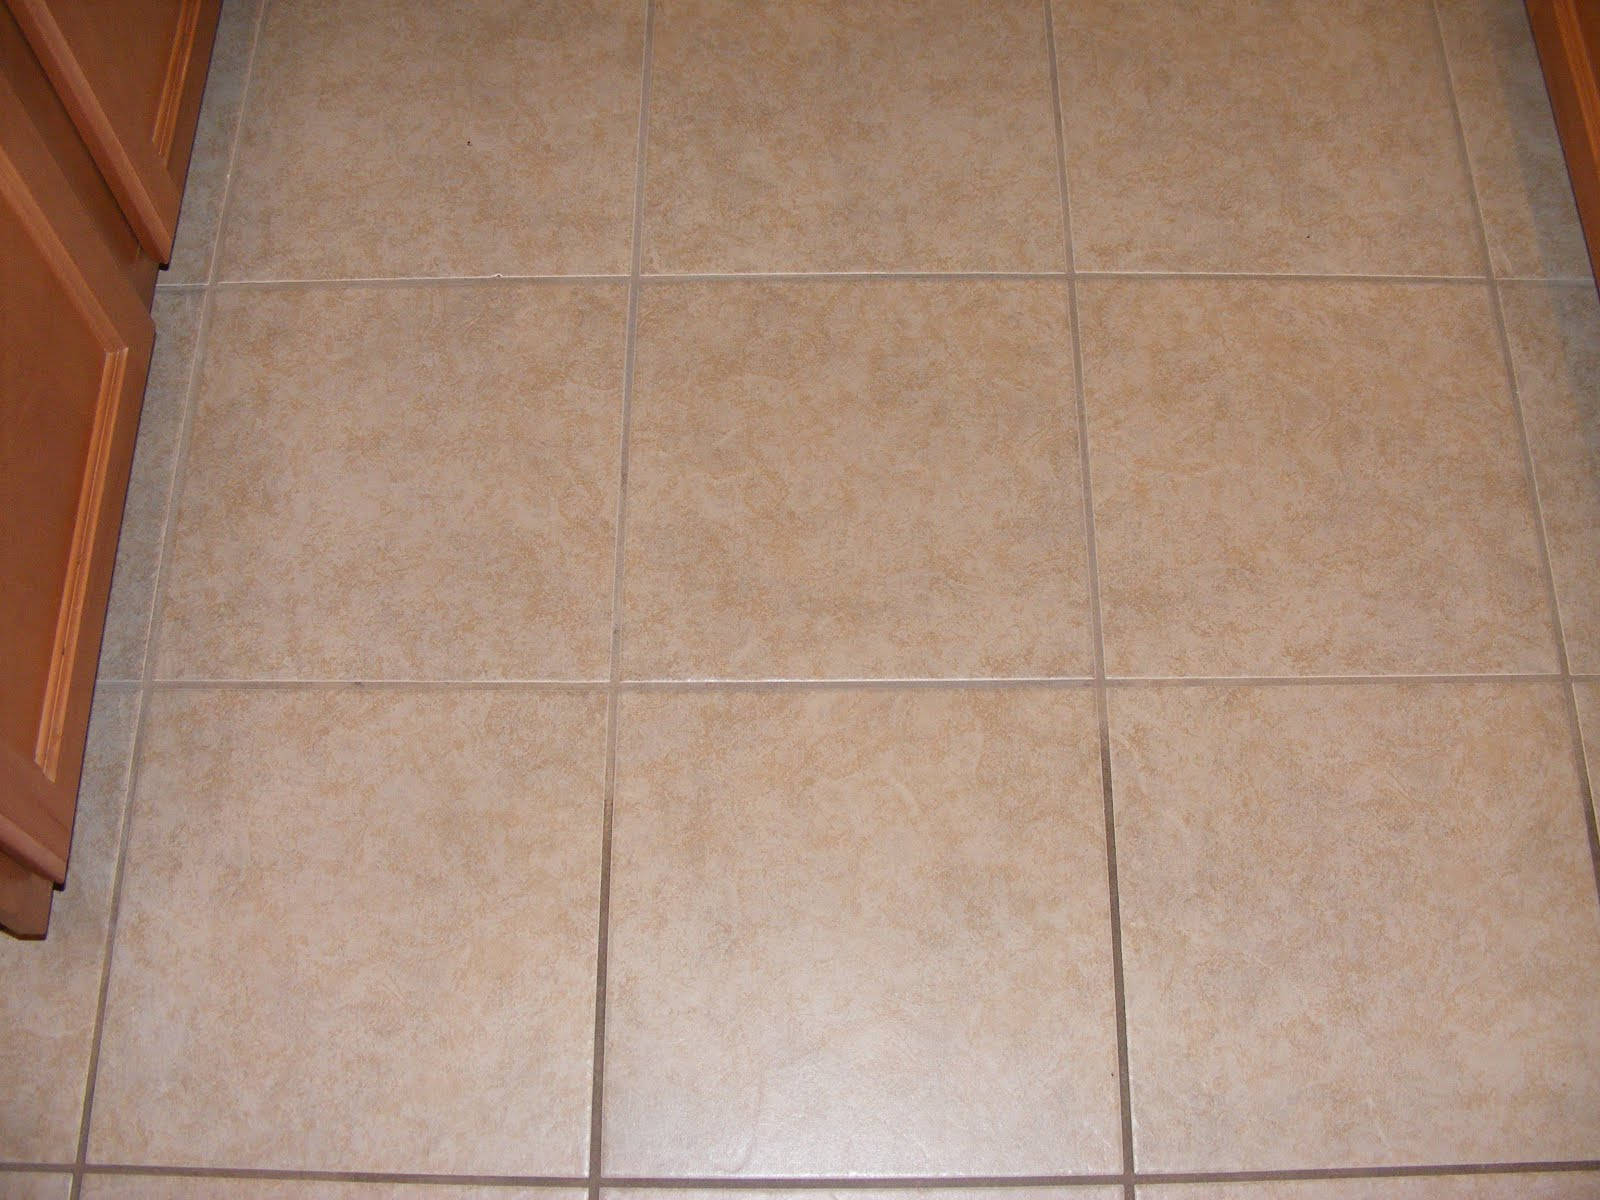 Amazing Grout Cleaner - Best way to clean bathroom floor